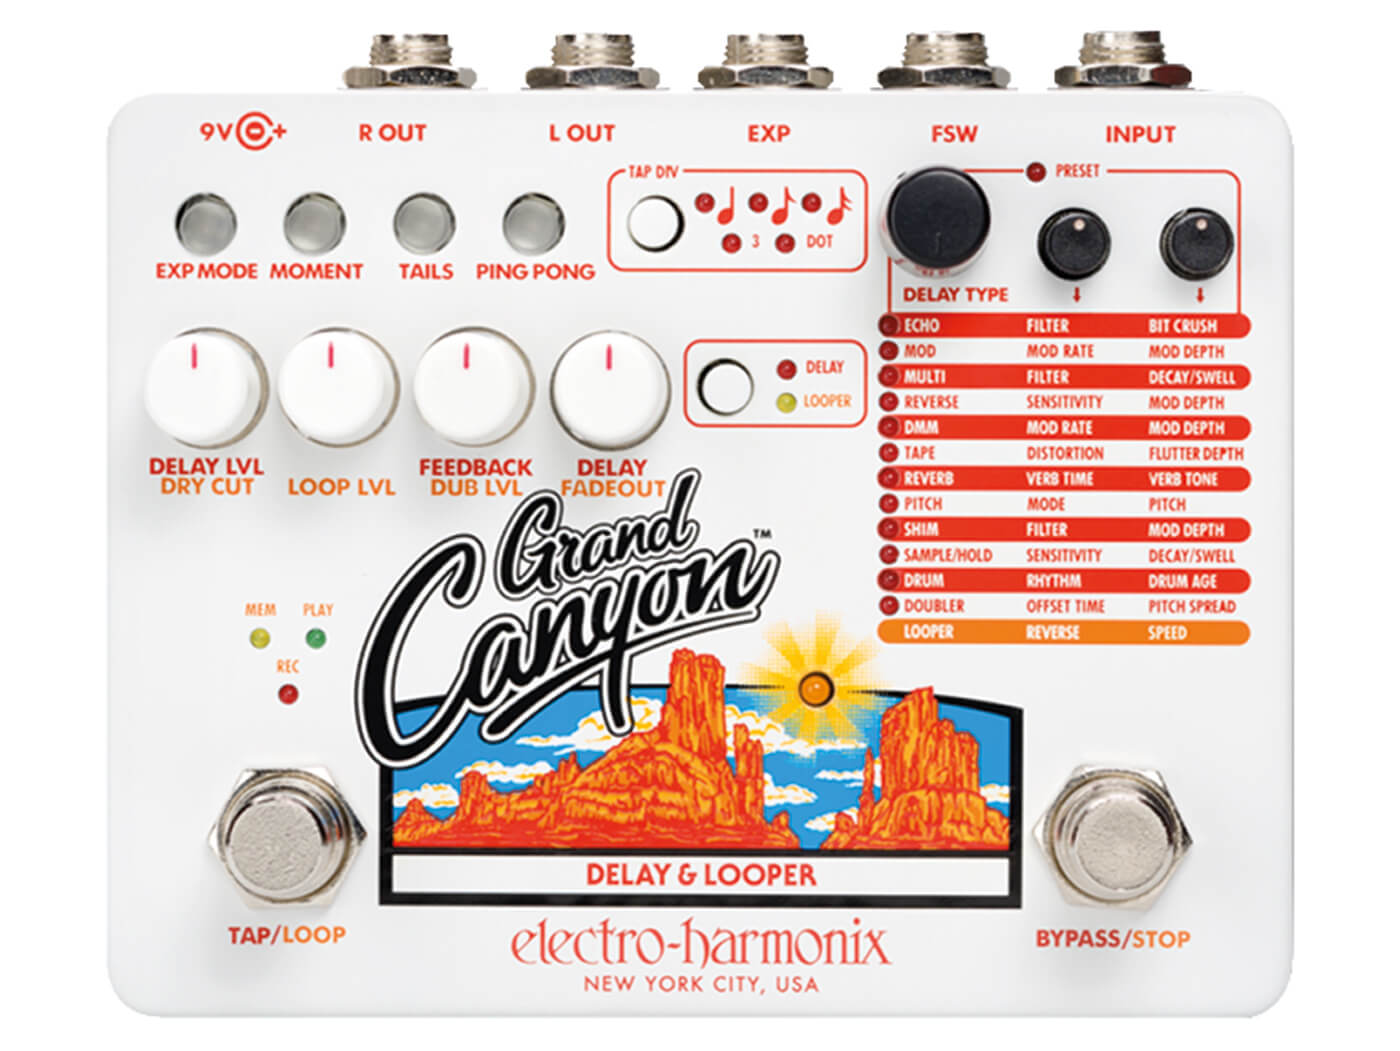 EHX Grand Canyon top